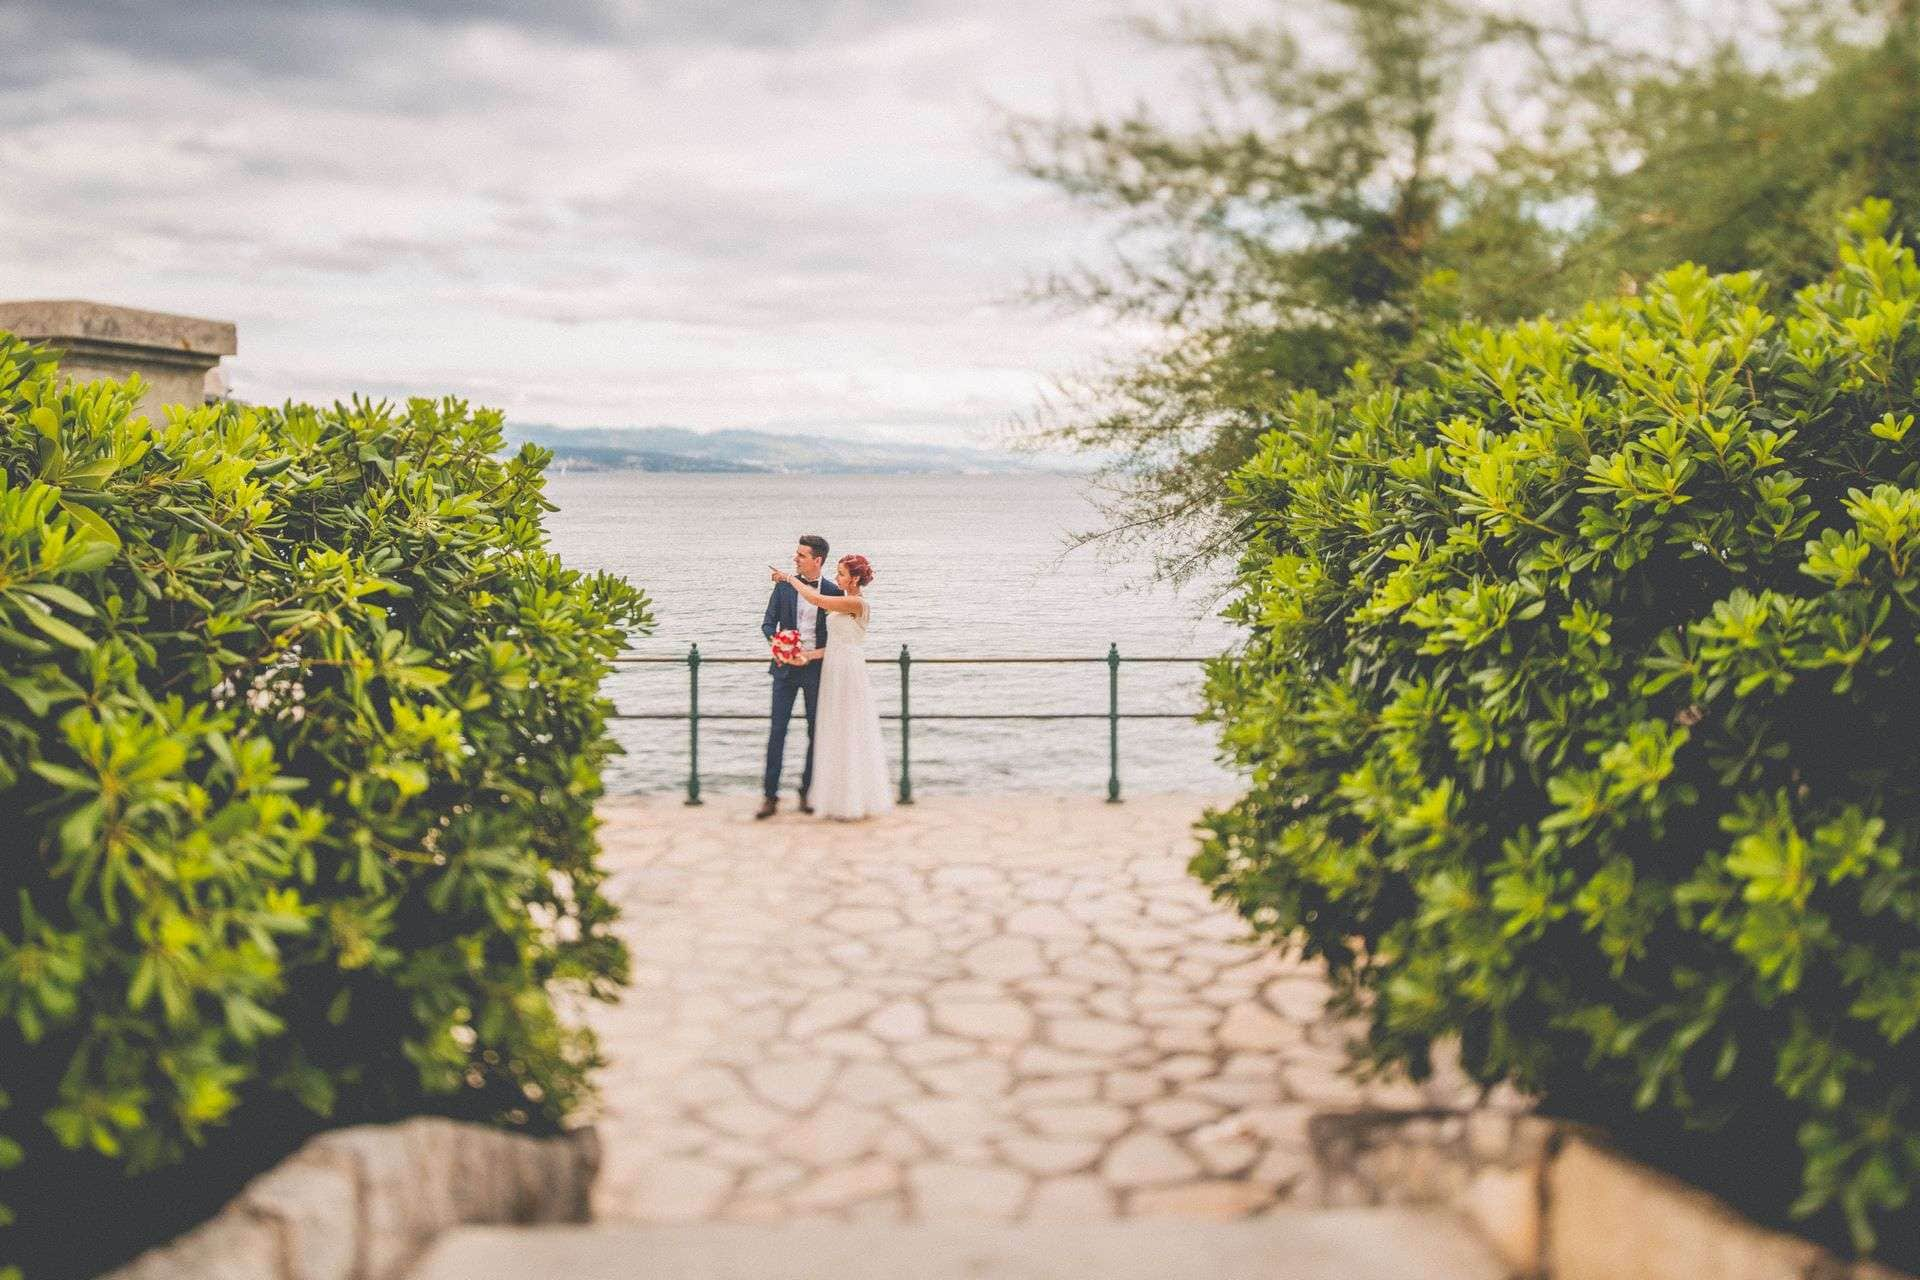 wedding-photographer-opatija-024